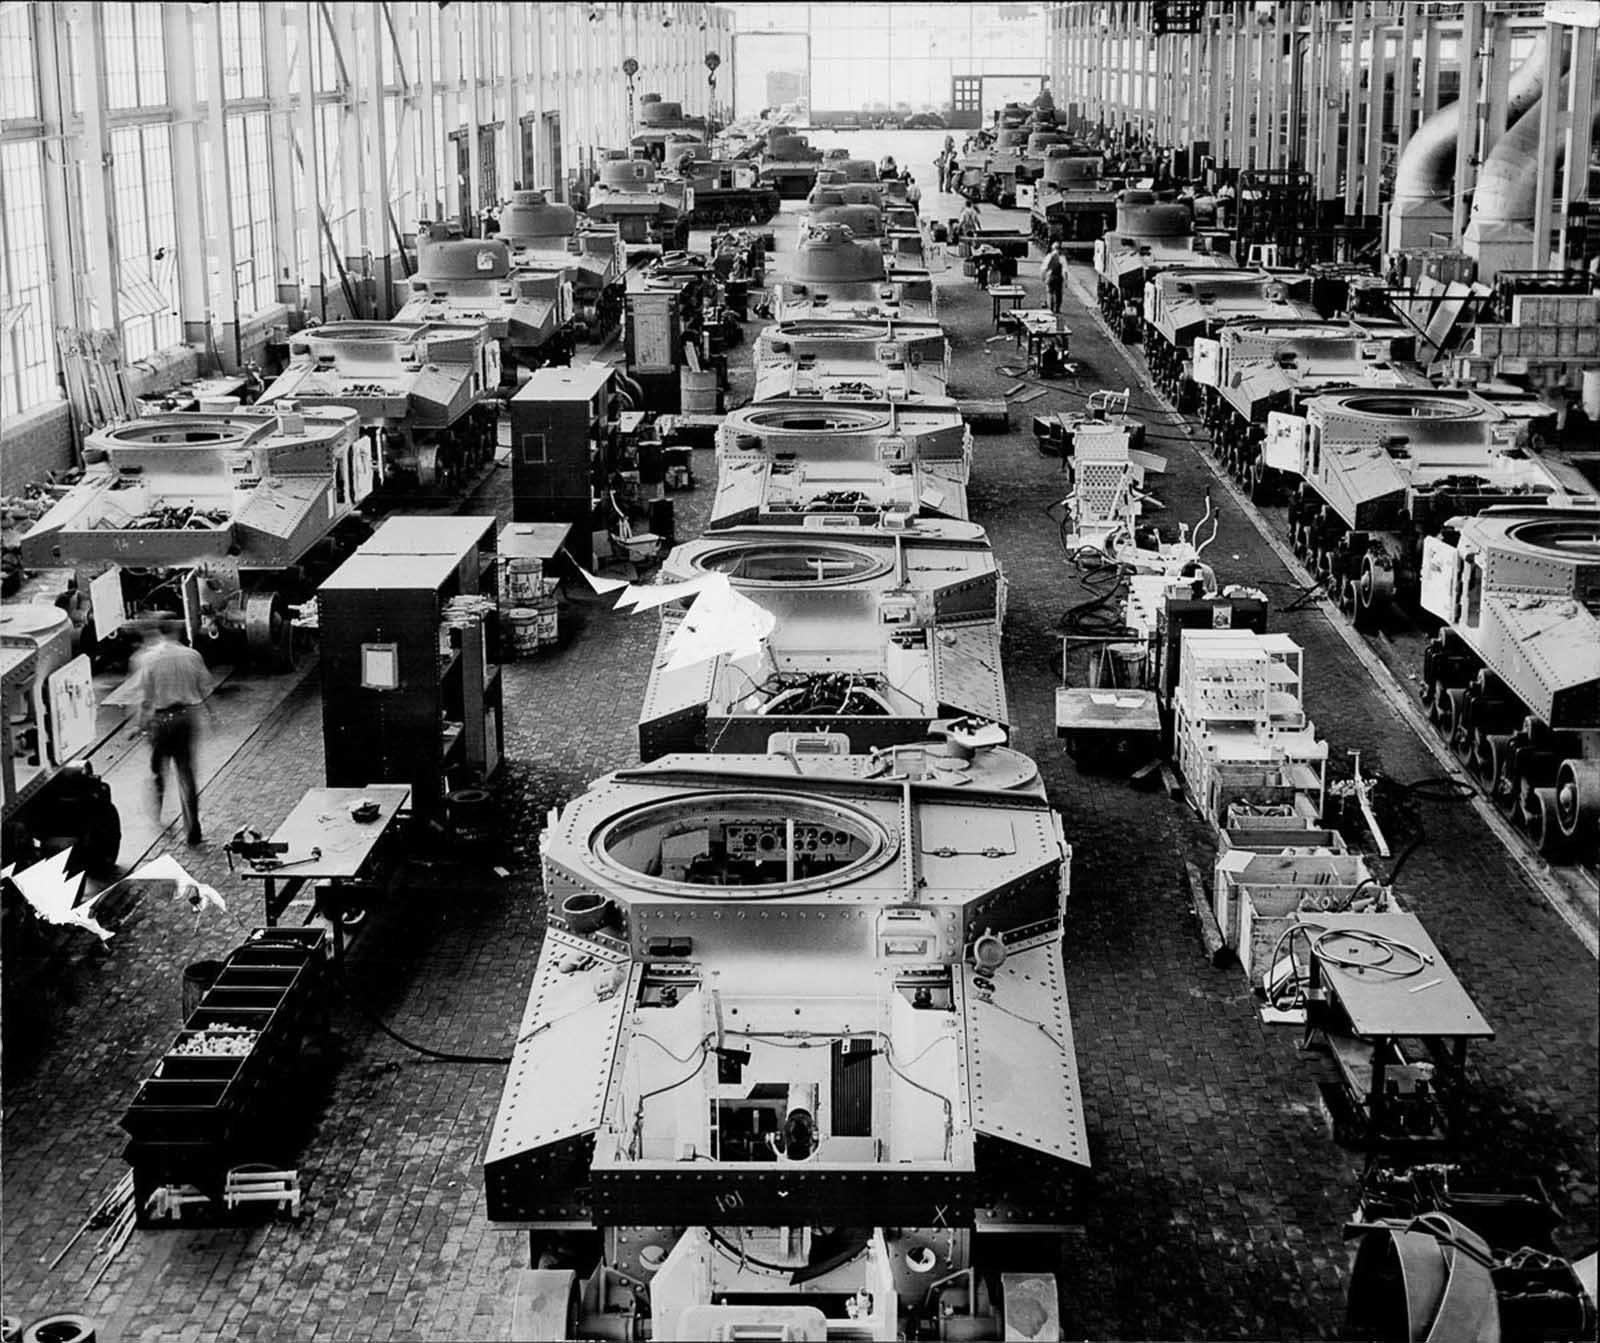 A Chrysler automobile assembly plant in Detroit, reconfigured to produce tanks. 1942.